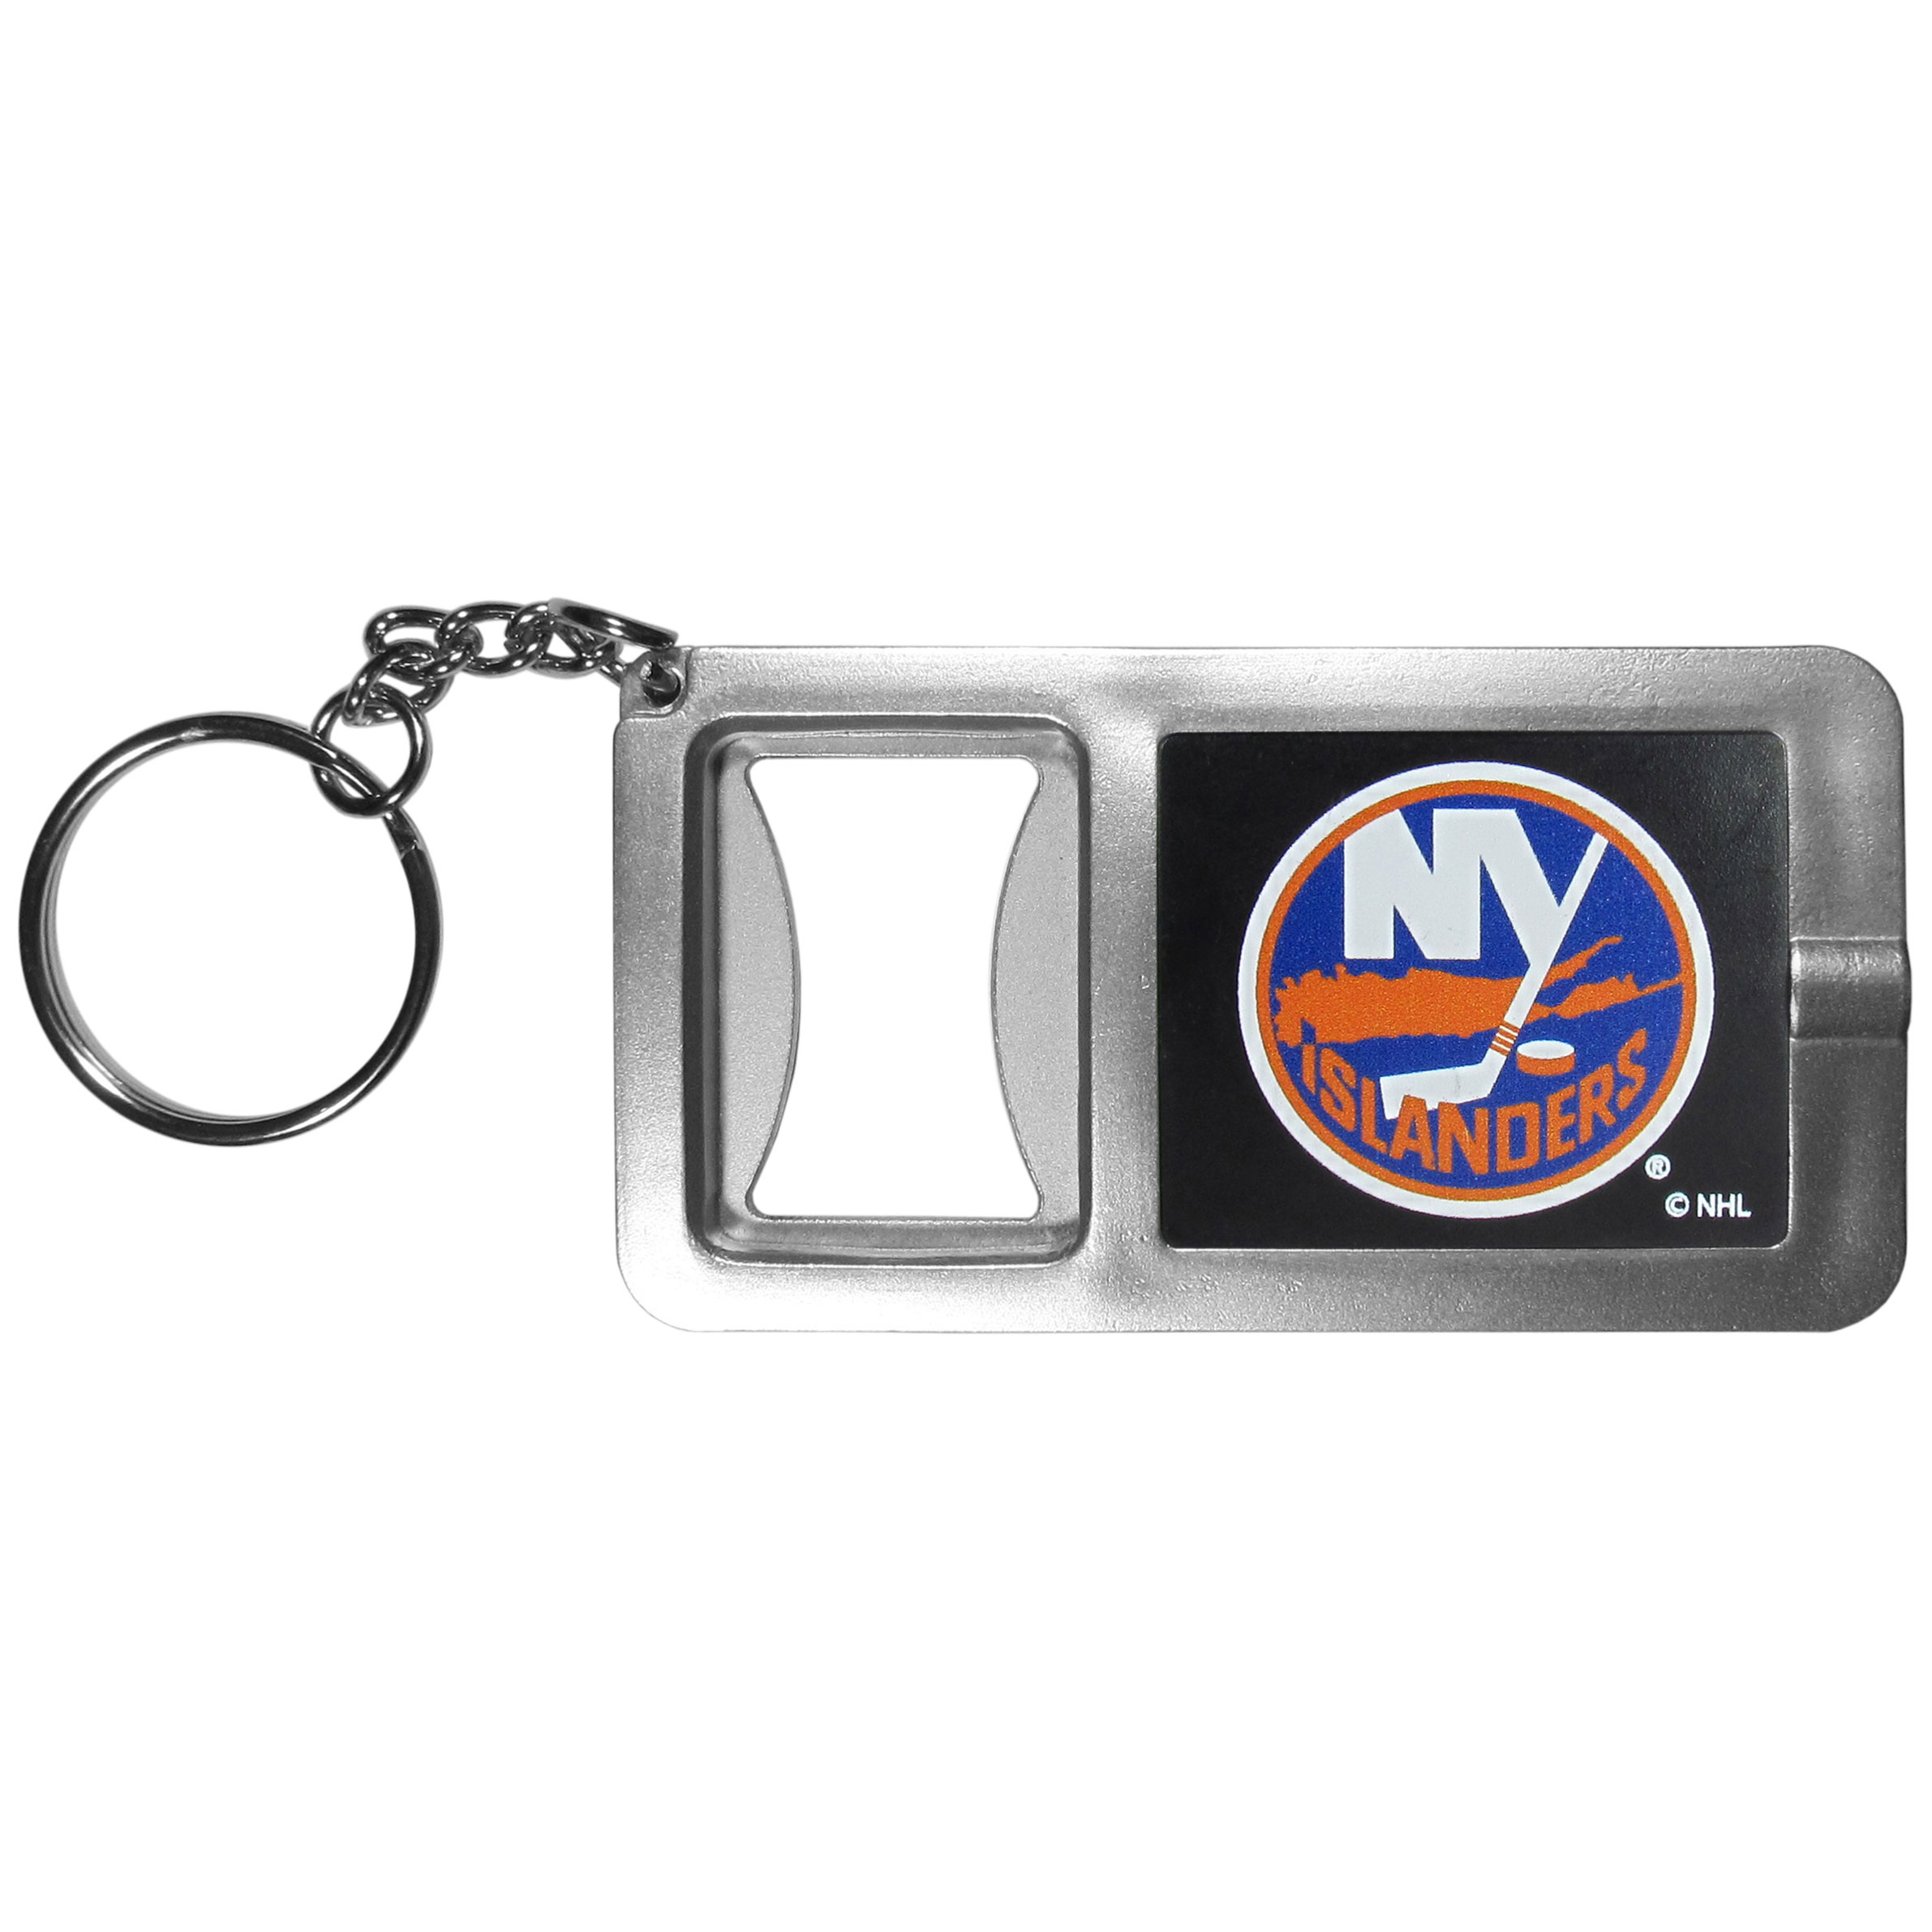 New York Islanders Flashlight Key Chain with Bottle Opener - Never be without light with our New York Islanders flashlight keychain that features a handy bottle opener feature. This versatile key chain is perfect for camping and travel and is a great way to show off your team pride!